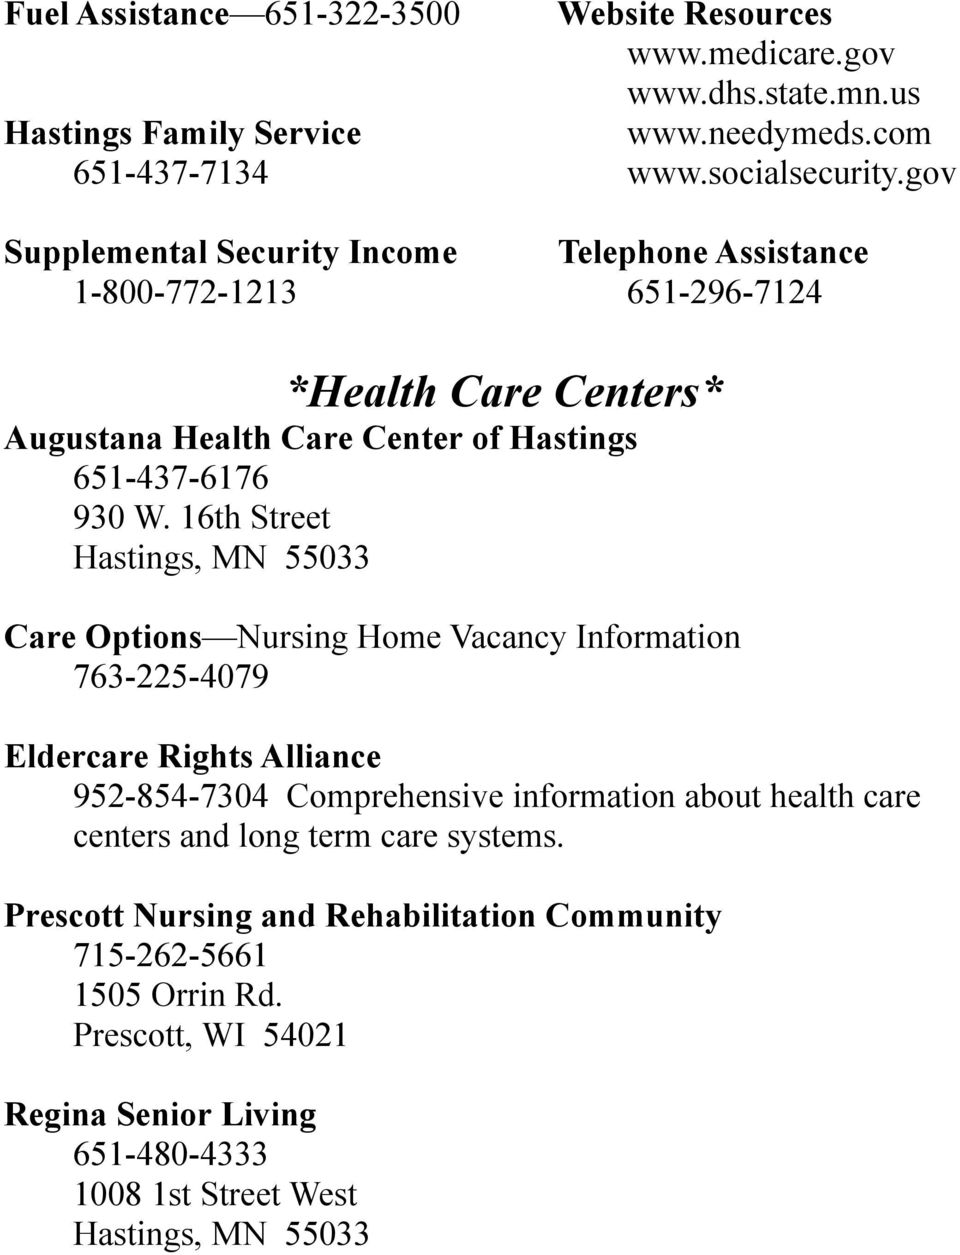 16th Street Care Options Nursing Home Vacancy Information 763-225-4079 Eldercare Rights Alliance 952-854-7304 Comprehensive information about health care centers